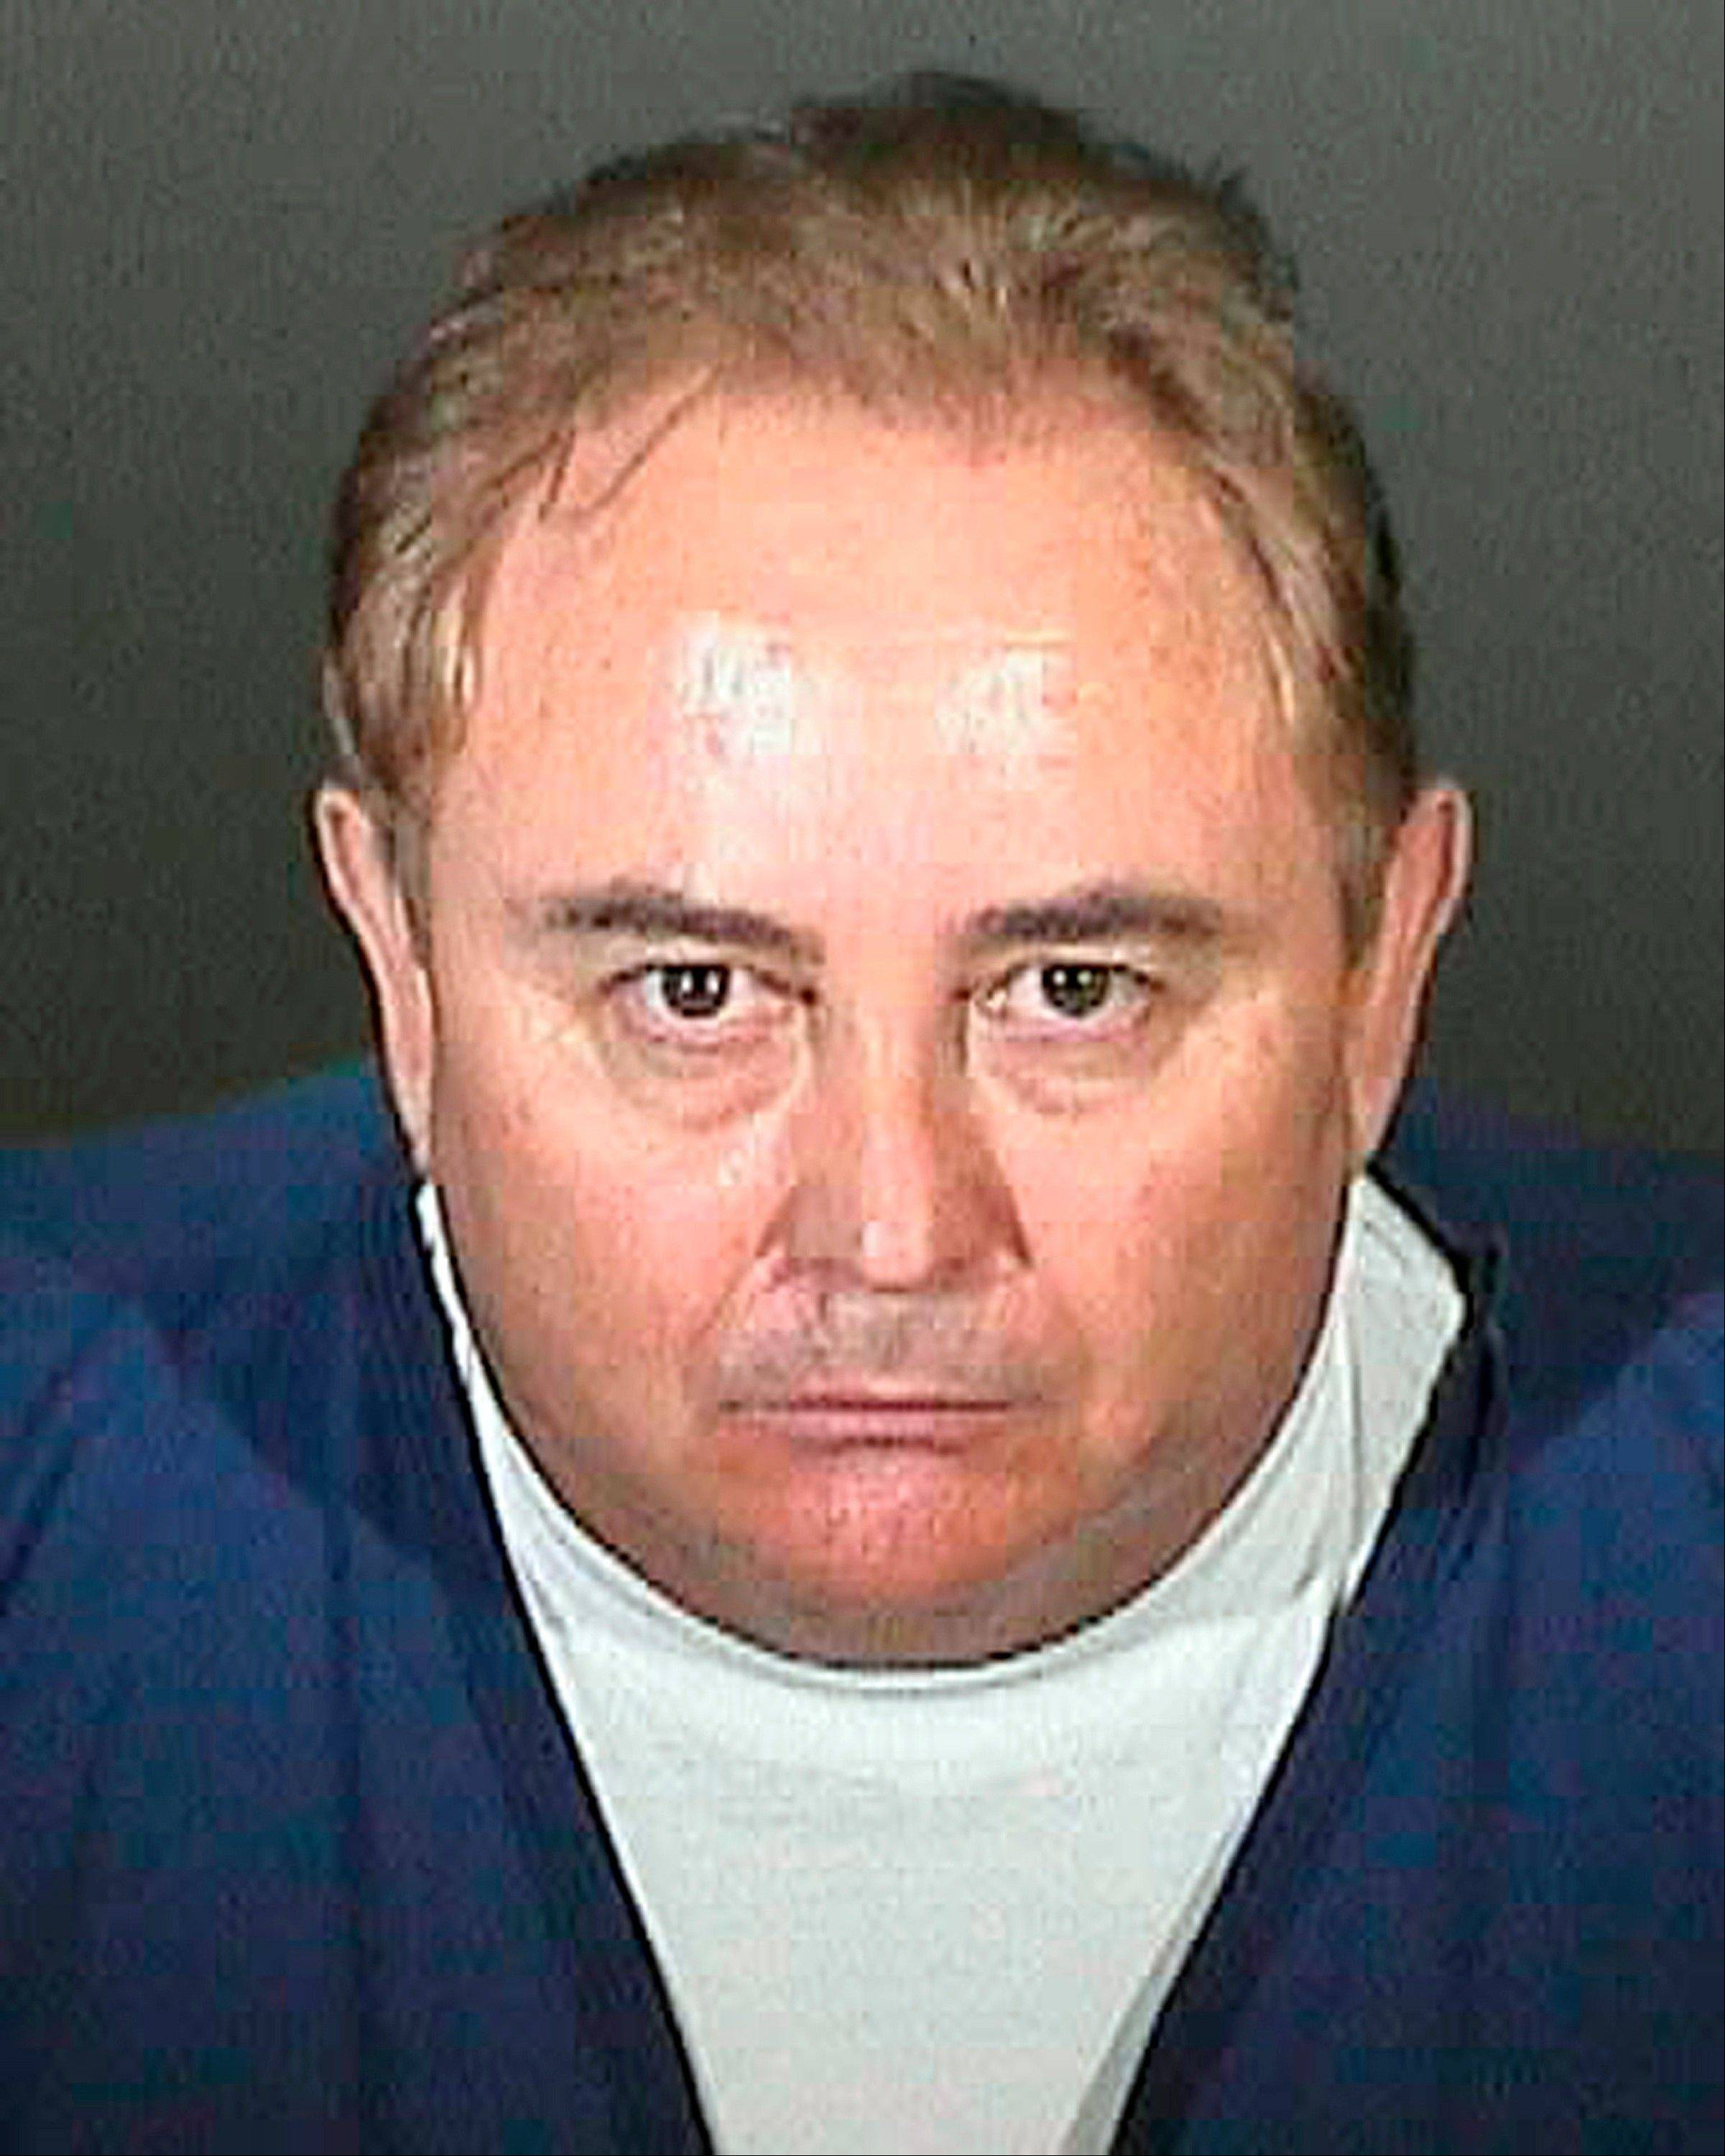 Jury selection begins Tuesday in the trial of former officials of the scandal ridden city of Bell, Calif., including Robert Rizzo, former city manager, in a massive corruption case that nearly bankrupted the working-class Los Angeles suburb.